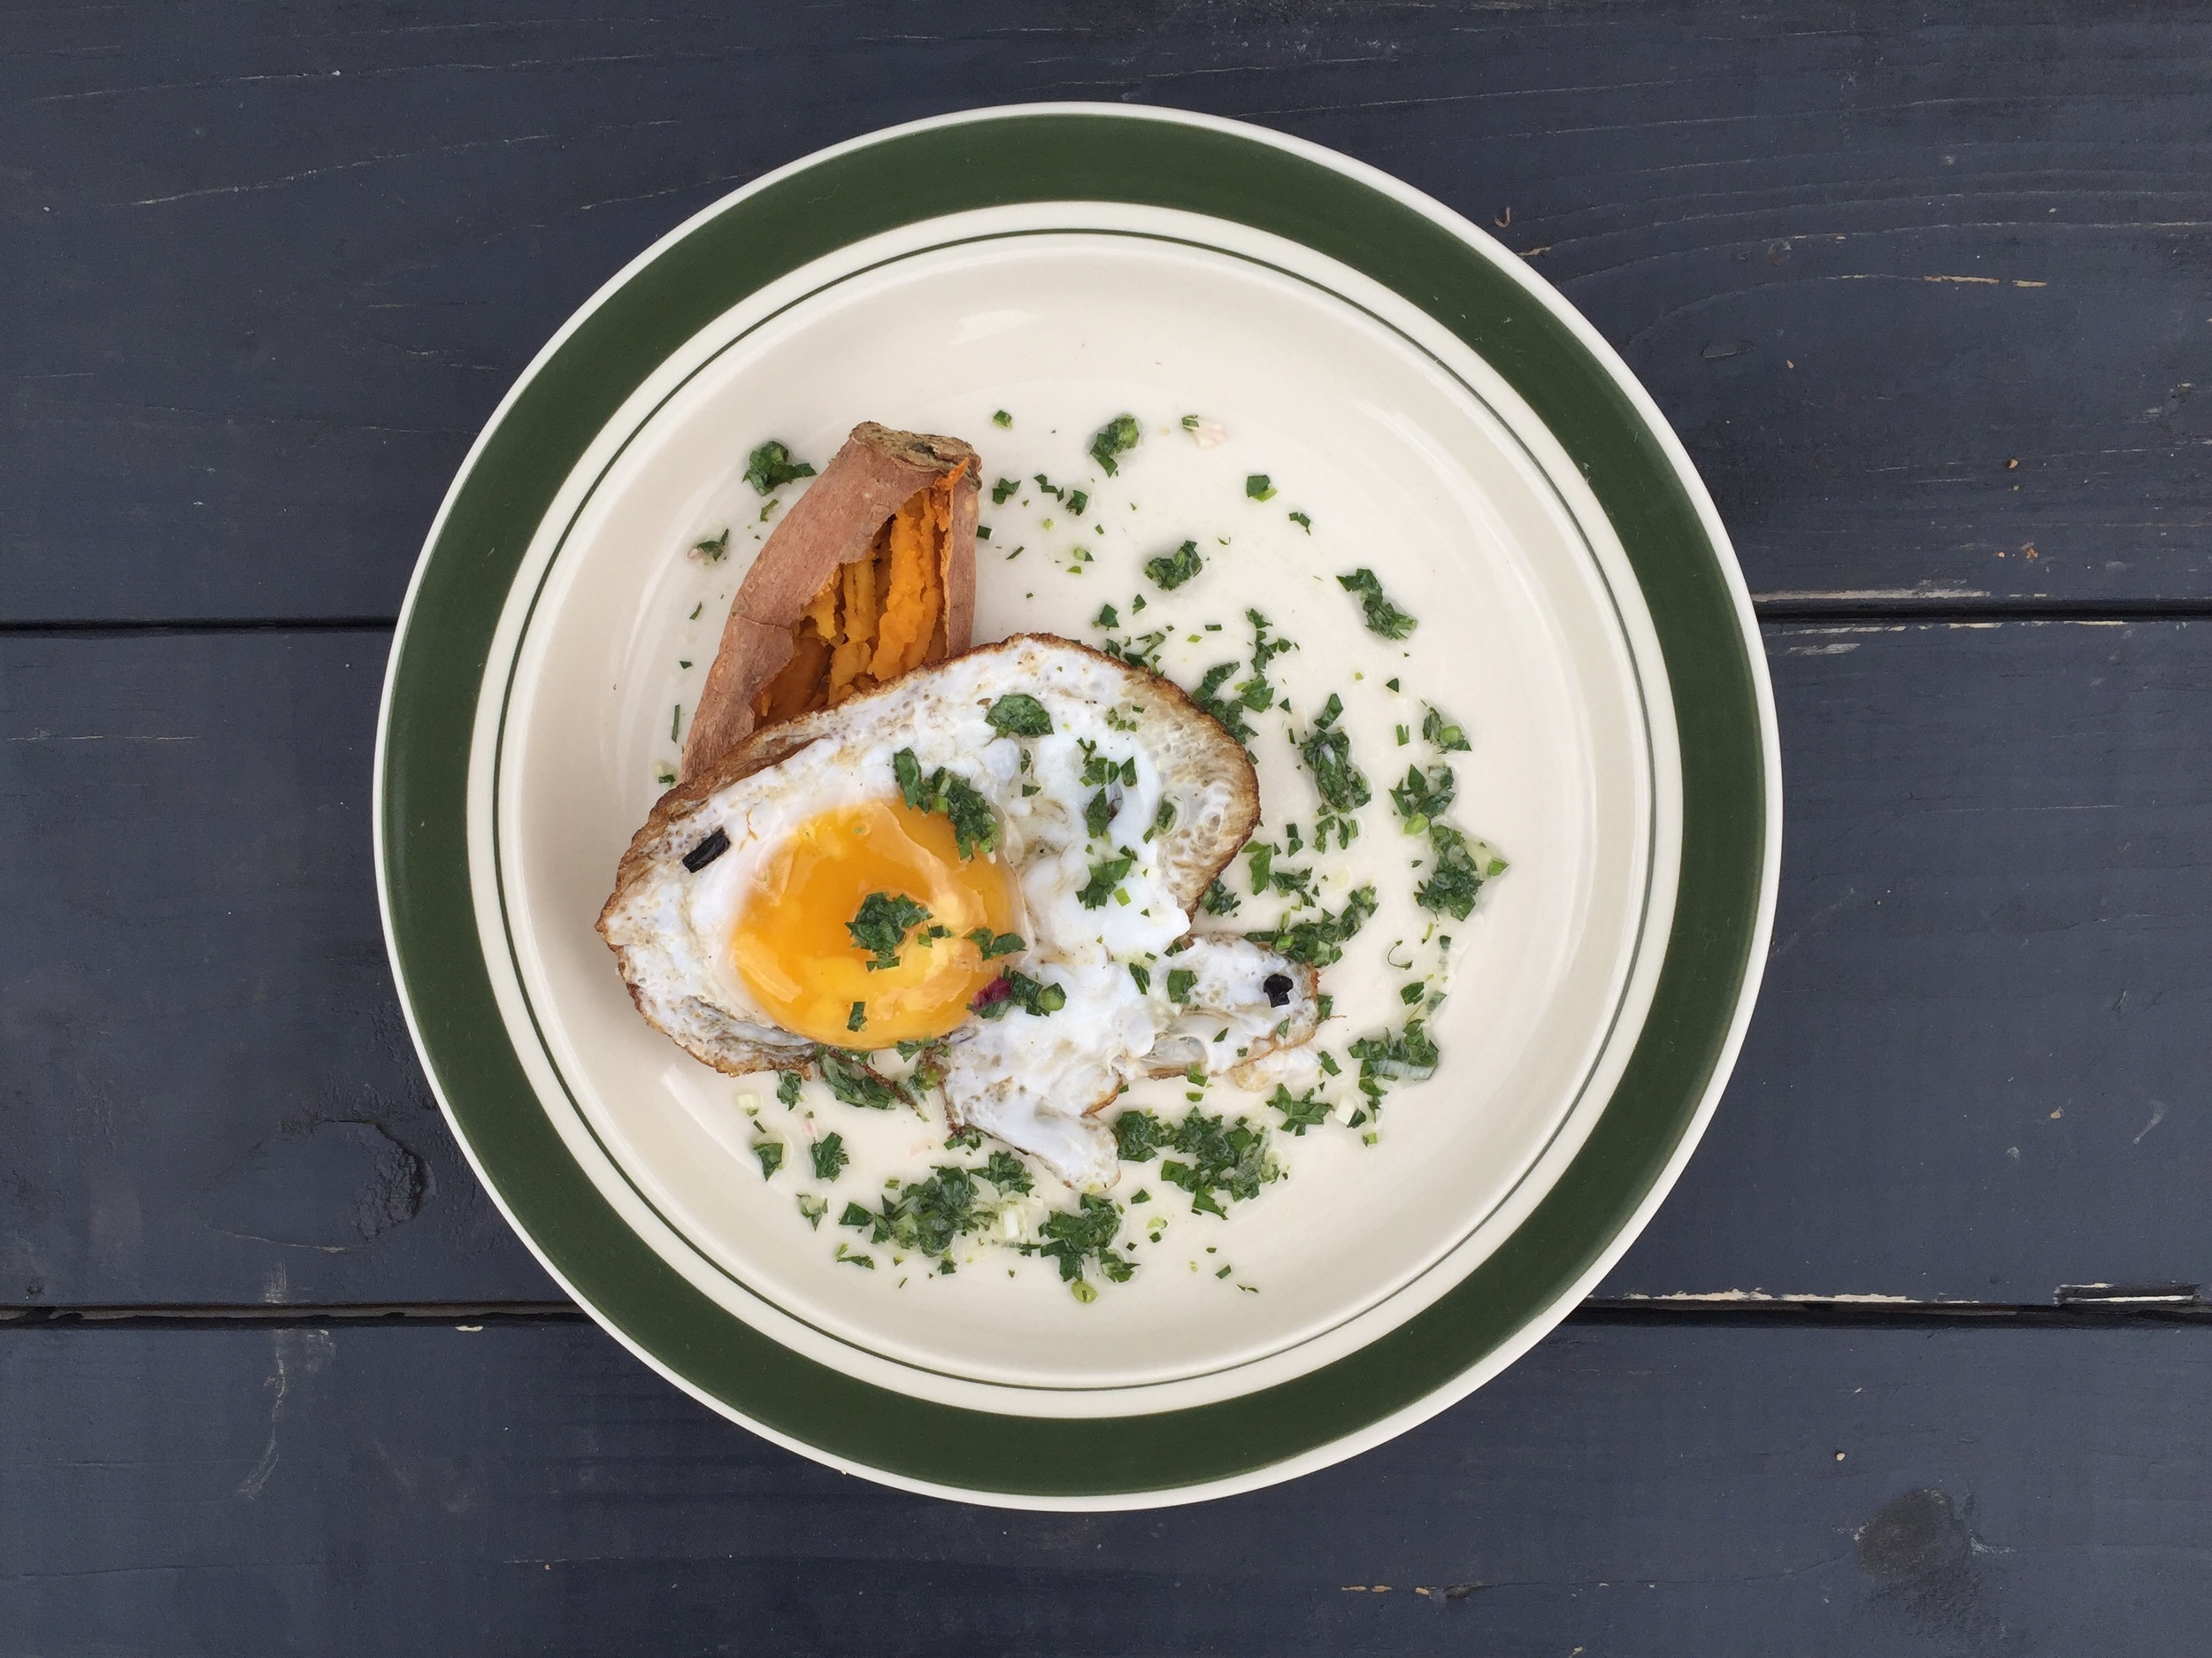 The second course from our April Biofarm to Table Dinner. Duck egg, slow roasted sweet potato, with a chimichurri sauce.